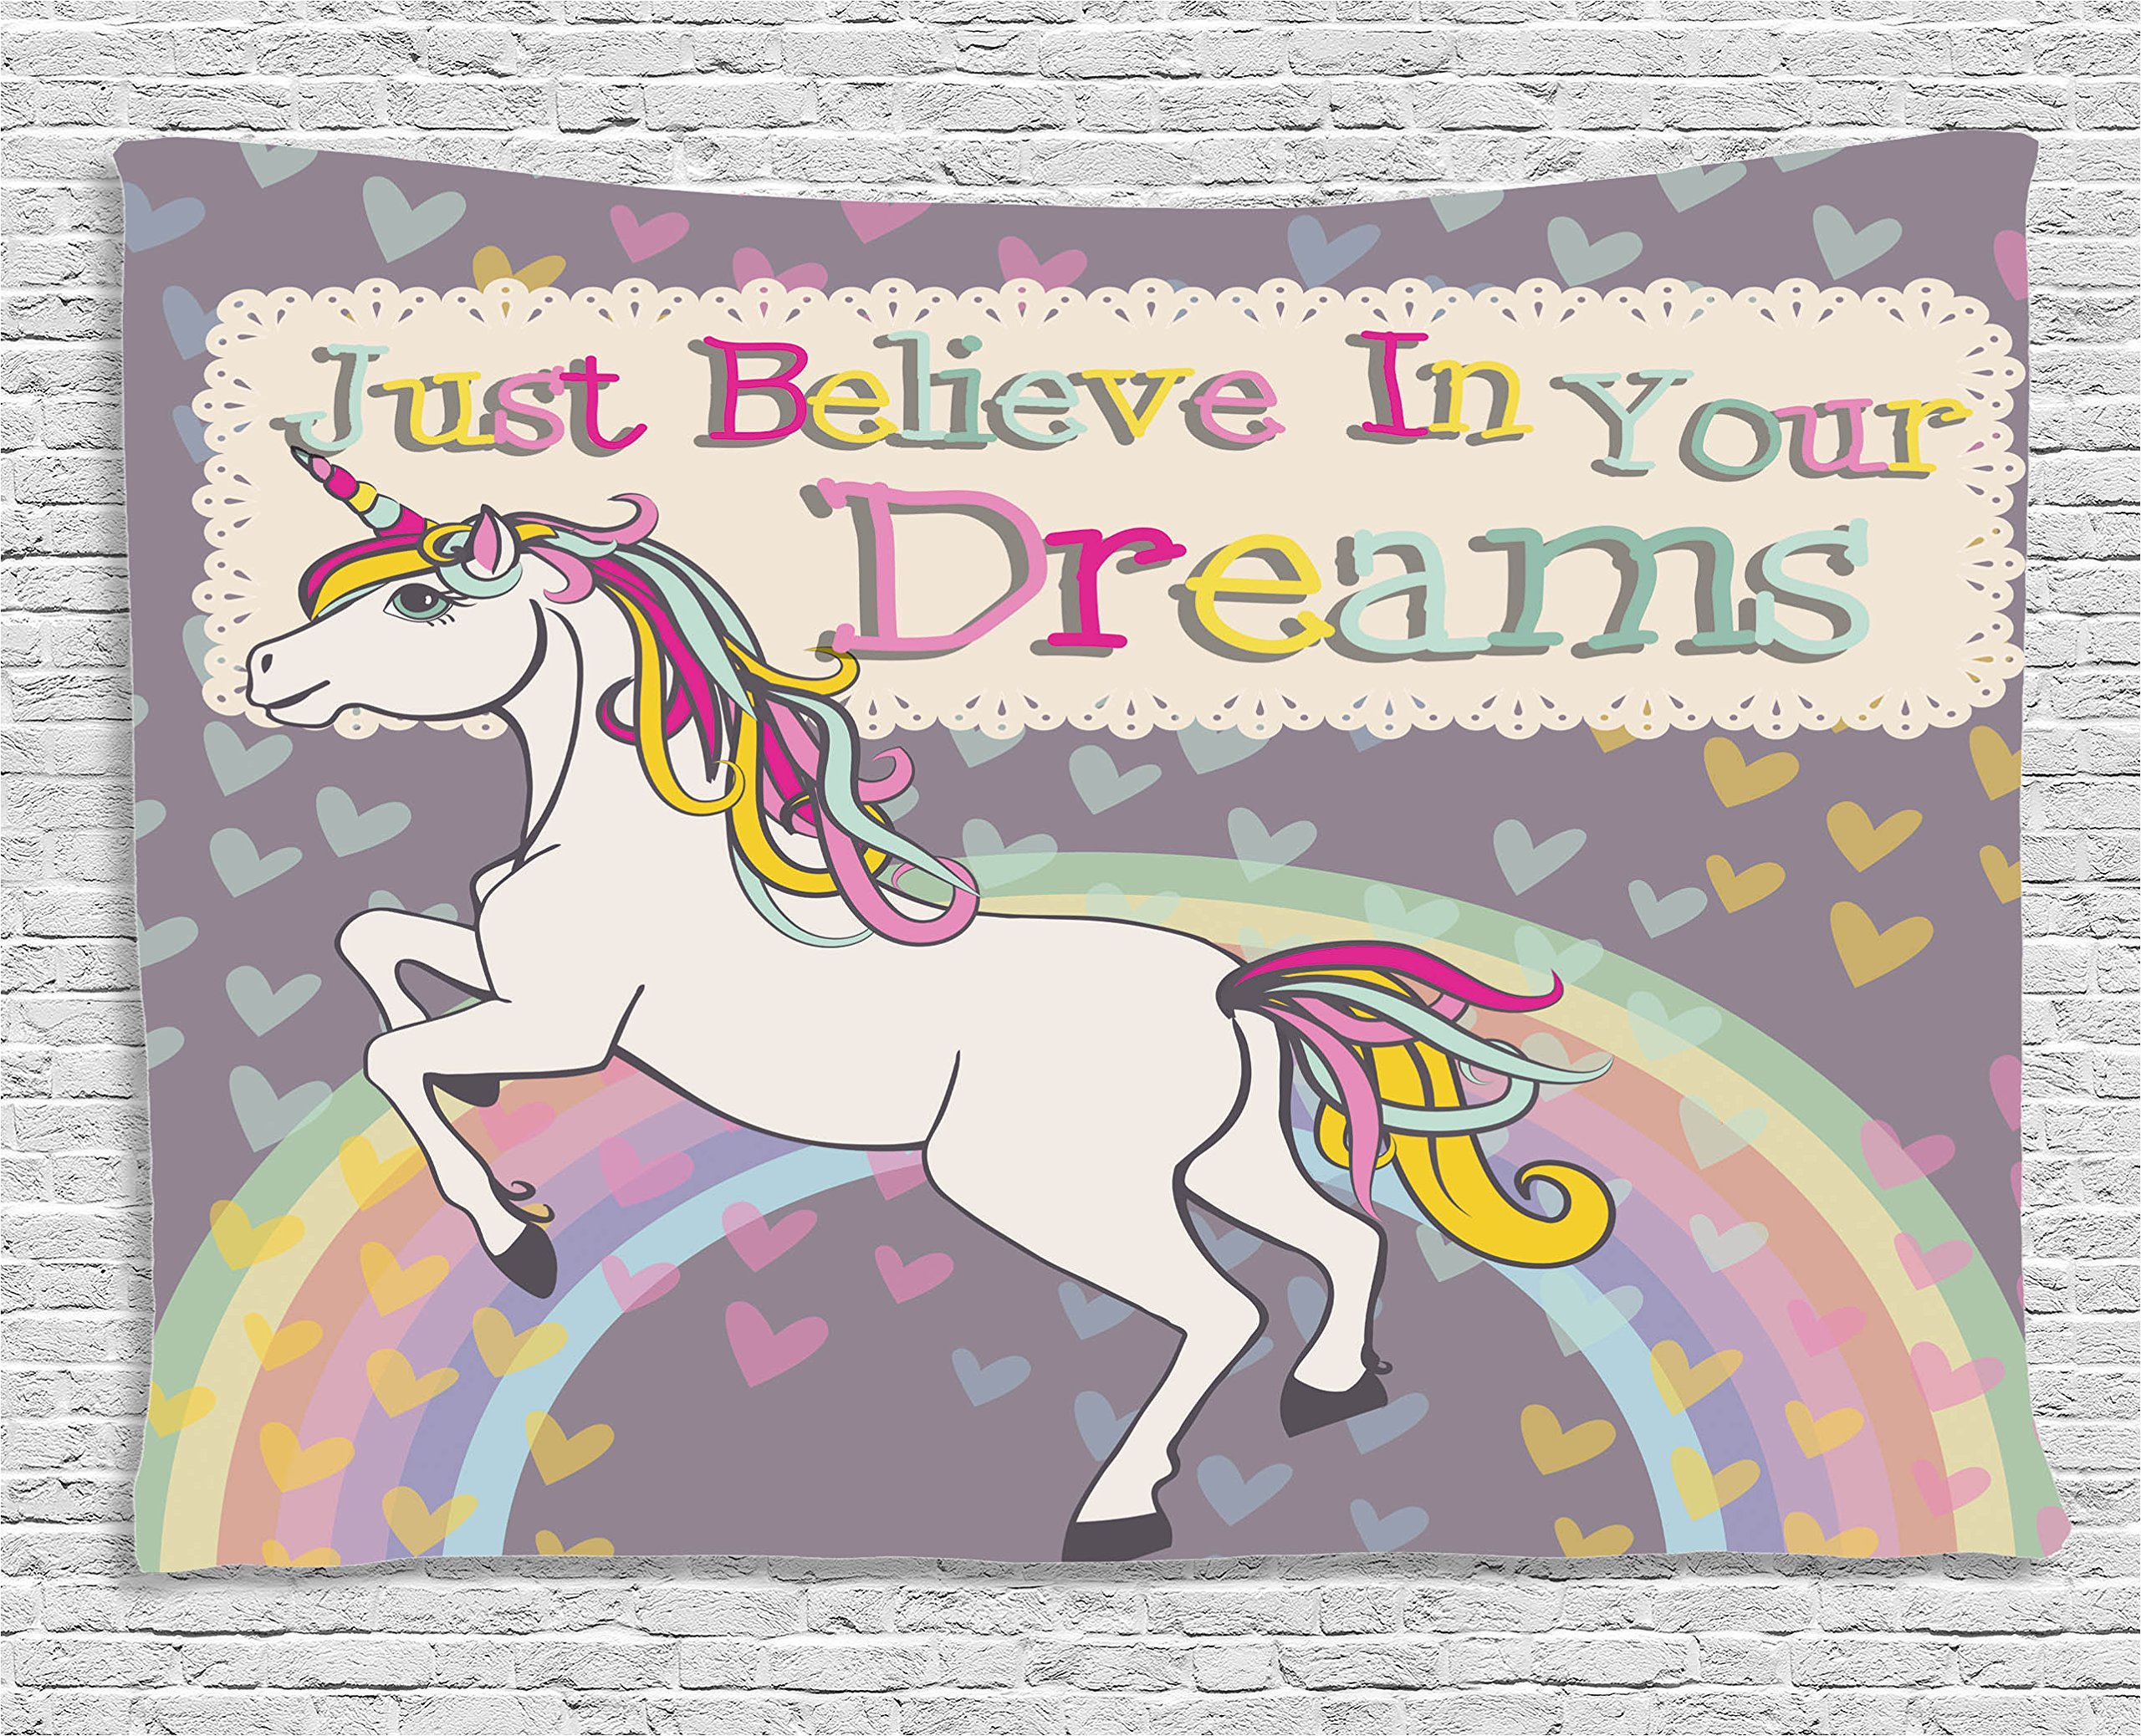 Ambesonne Teen Girls Decor Tapestry, Unicorn with Believe in Your Dreams Inspiring Quotes Illustration, Wall Hanging for Bedroom Living Room Dorm, 60 X 40 inches, Lilac and Beige